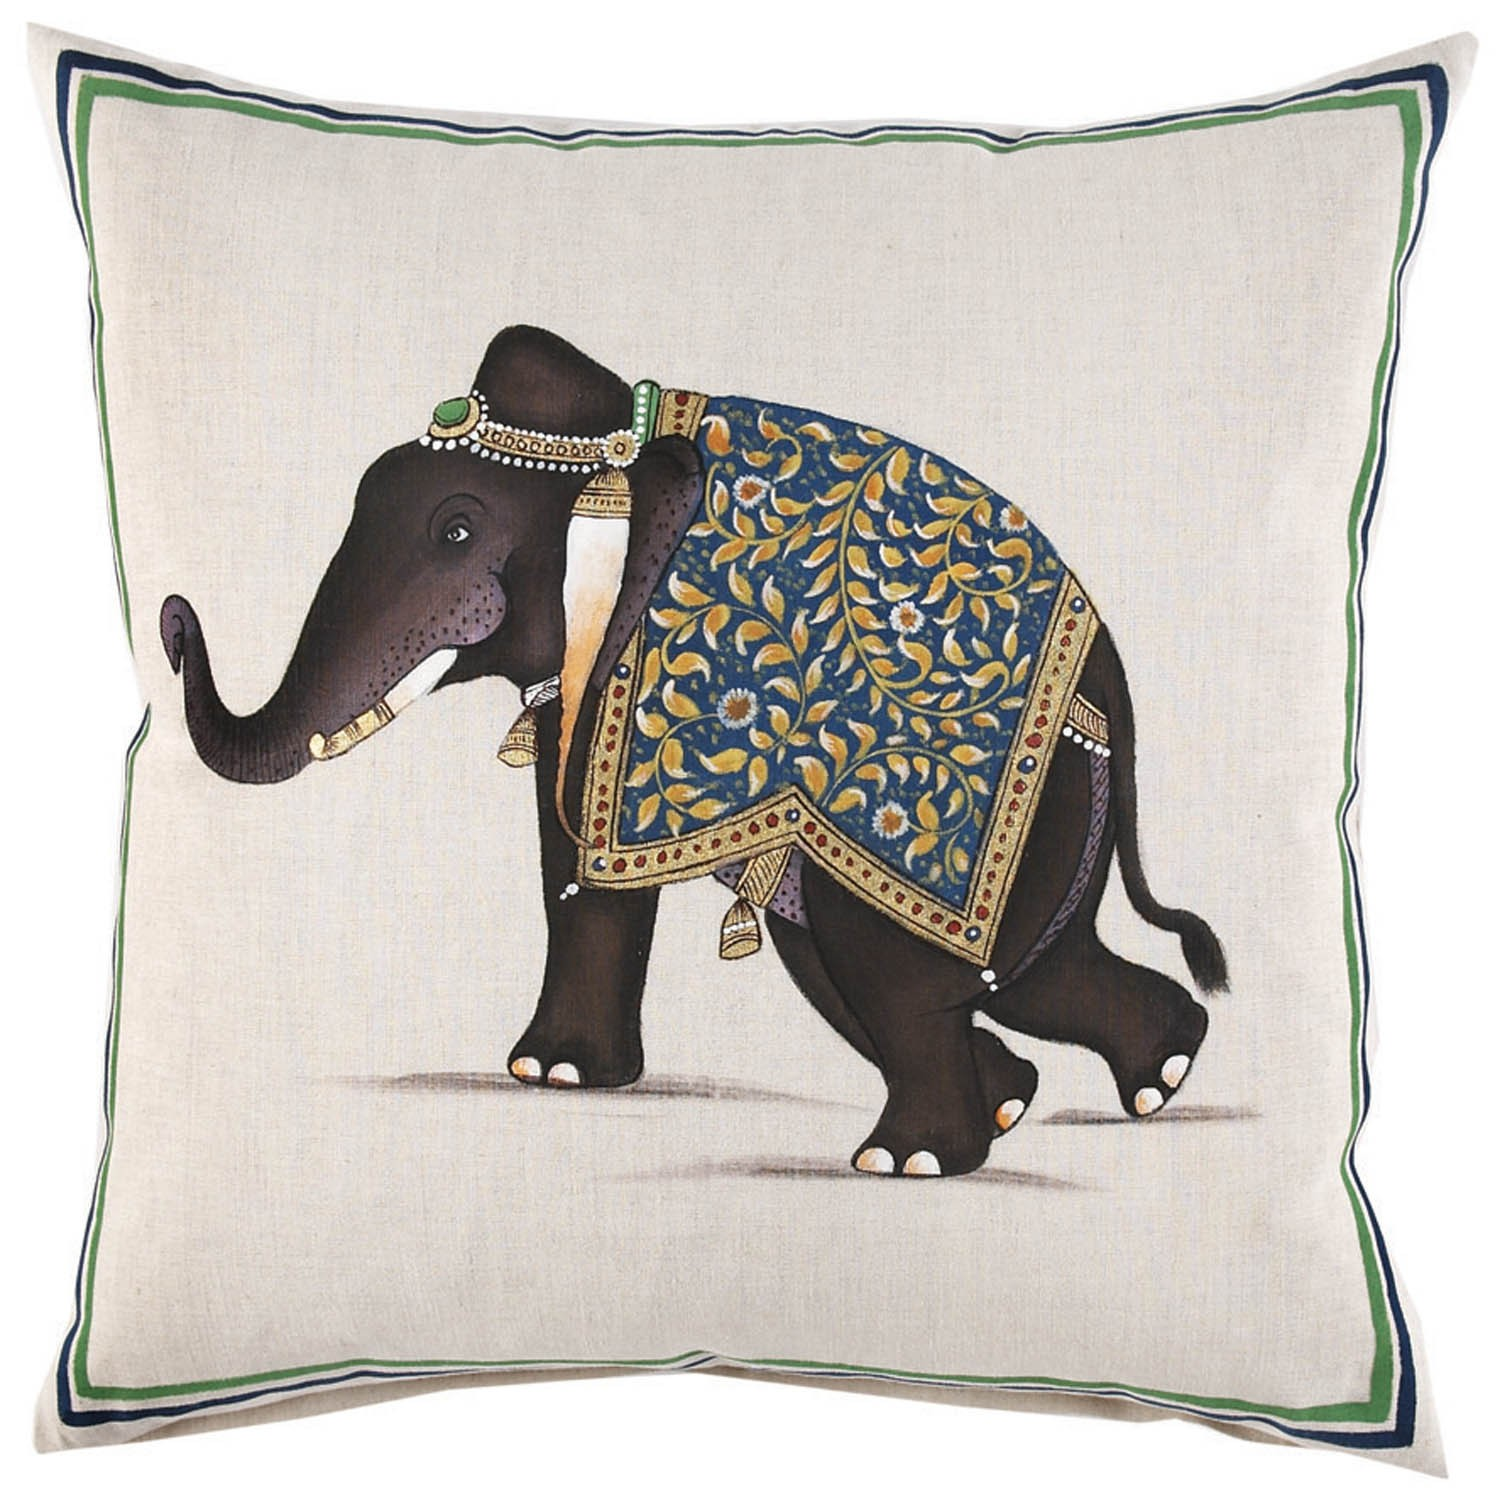 Amusing John Robshaw Pillows for Living Room Accessories Ideas: John Robshaw Furniture | John Robshaw Pillows | Indian Print Quilts